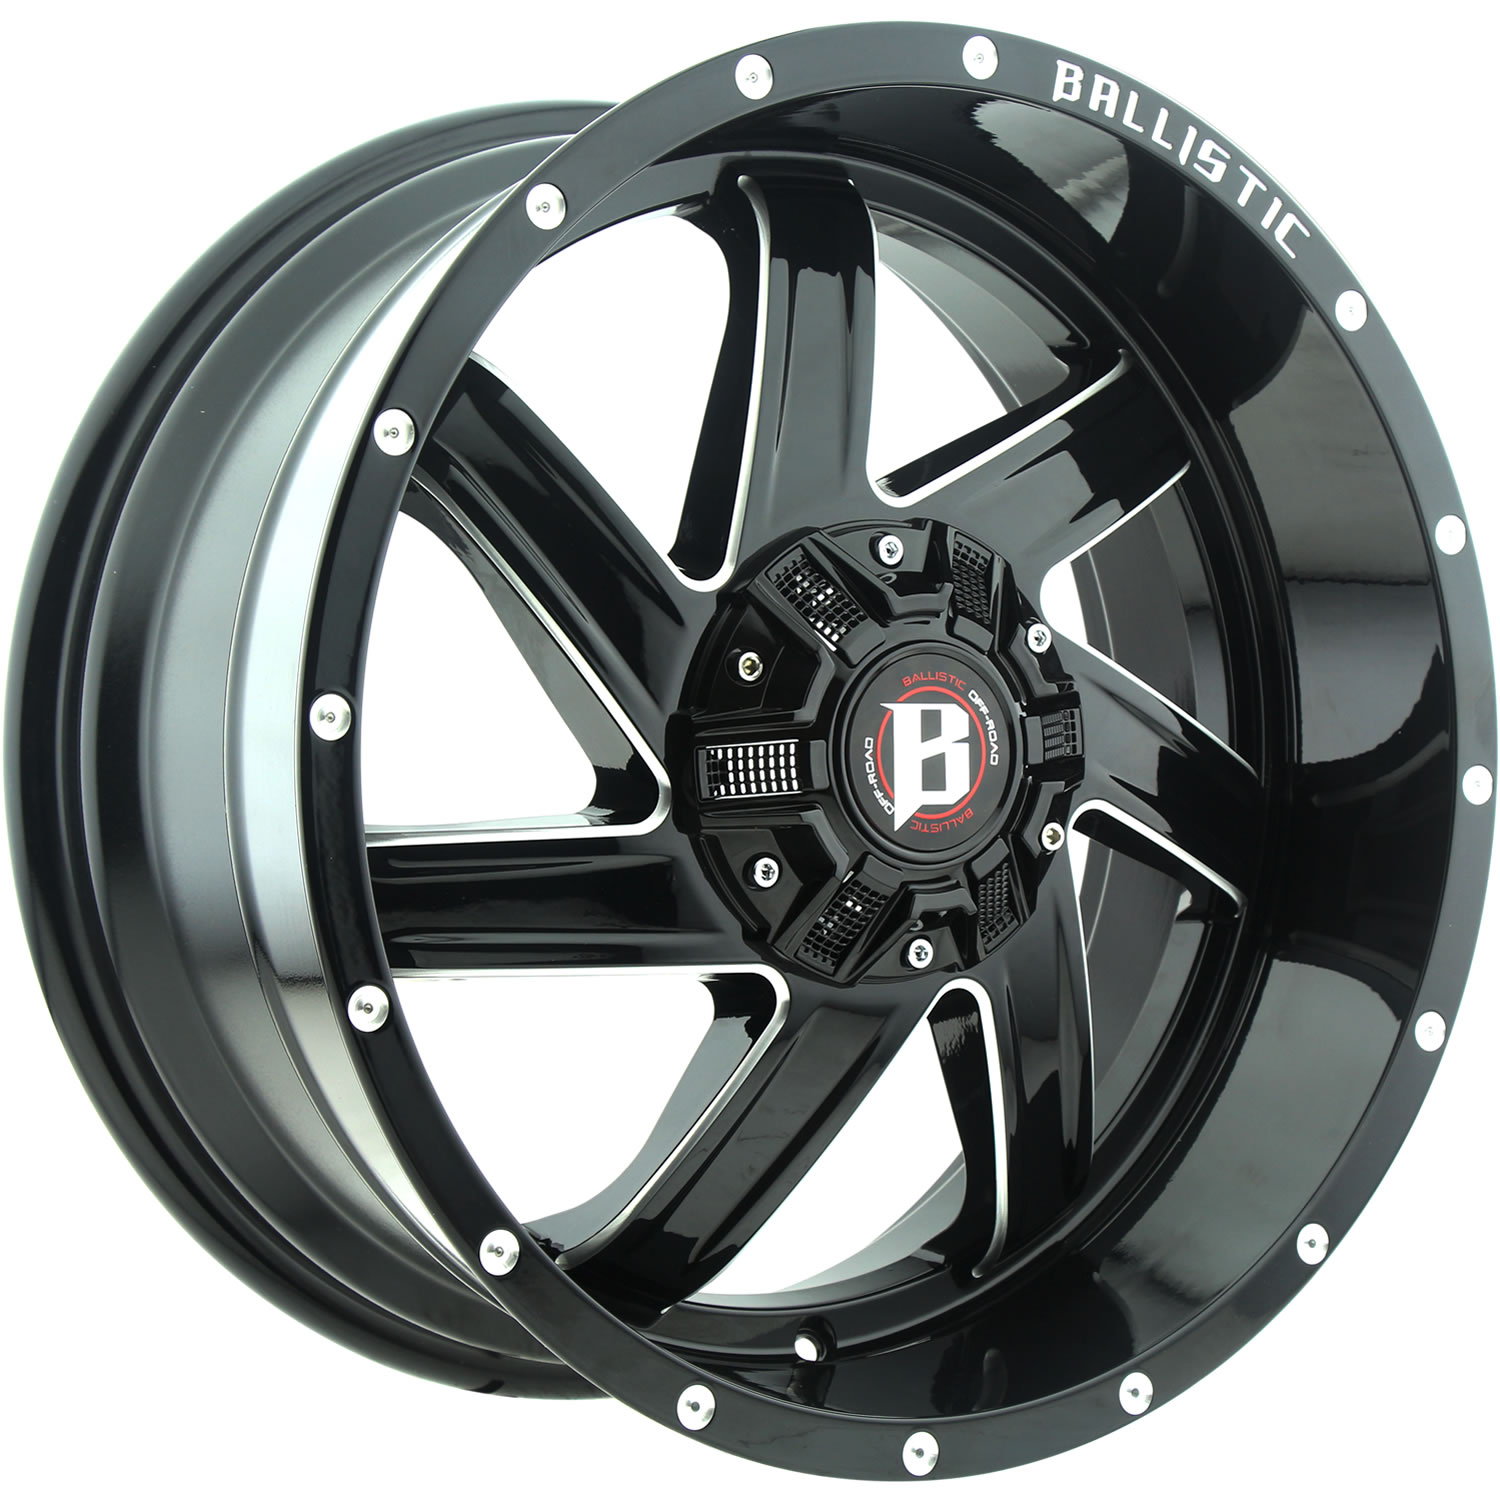 Ballistic Guillotine 22x12 44 Custom Wheels